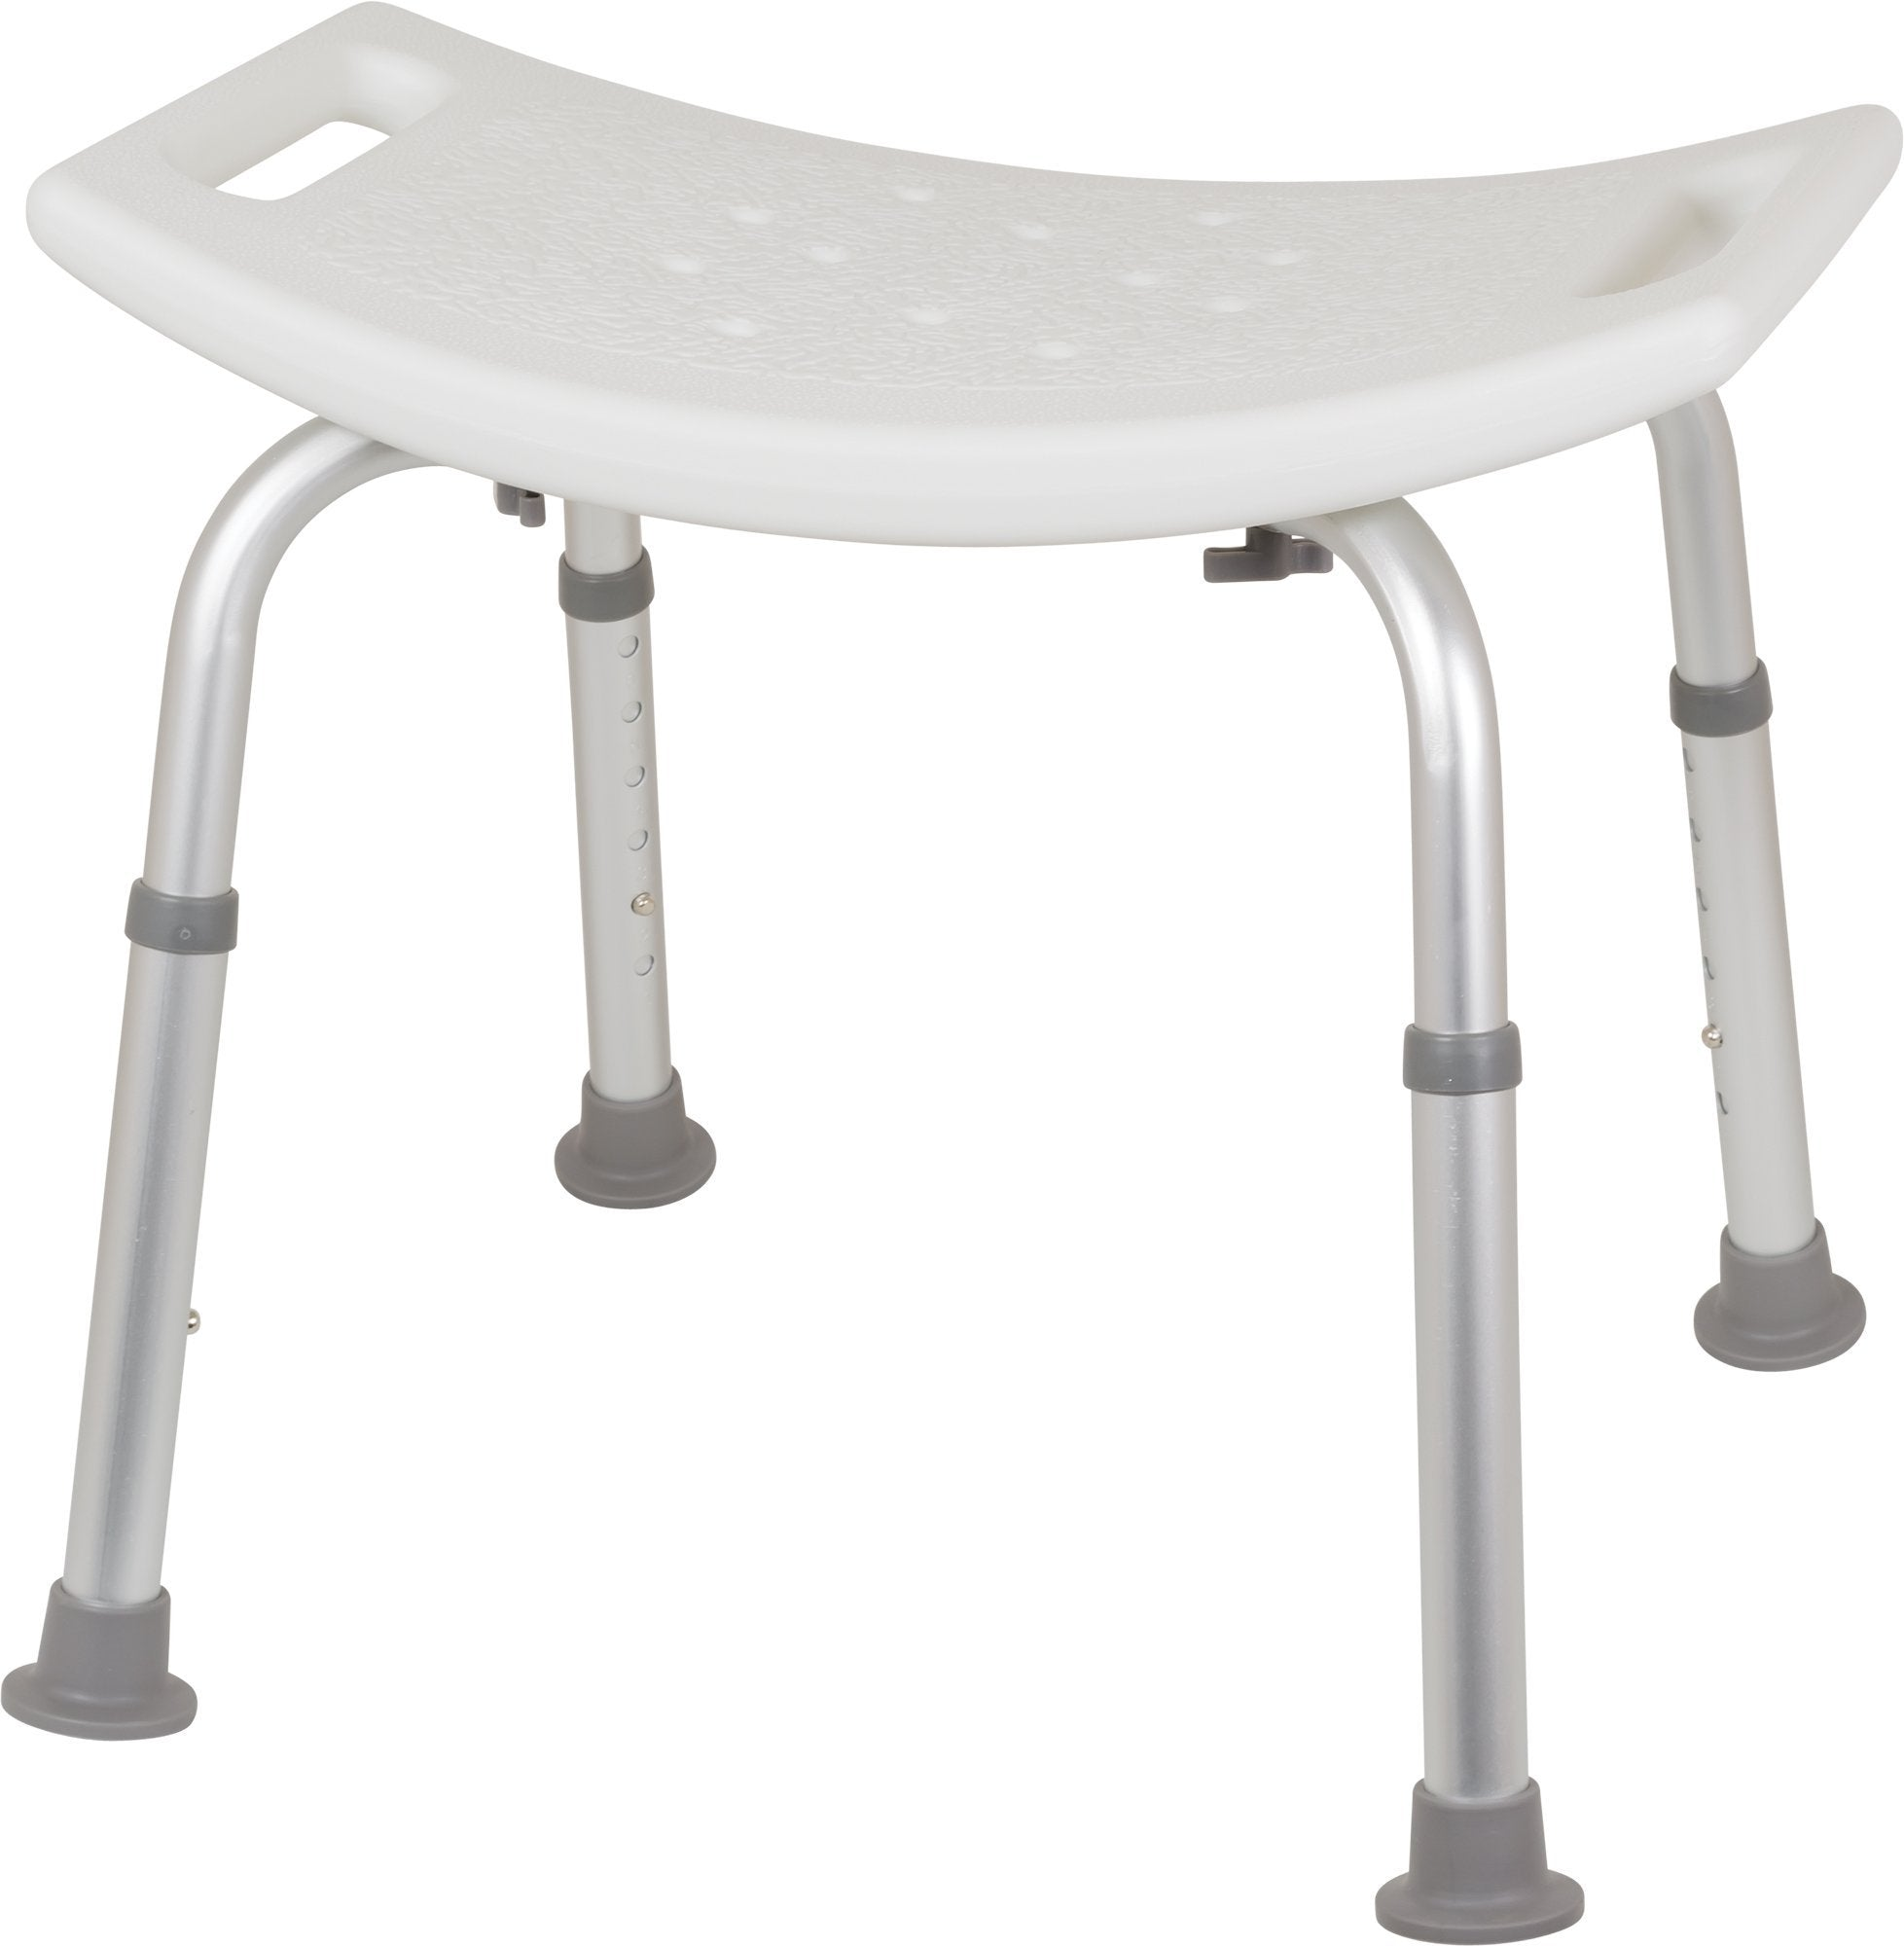 Bariatric Shower Chair without Back, 550lb Weight Capacity - US MED REHAB